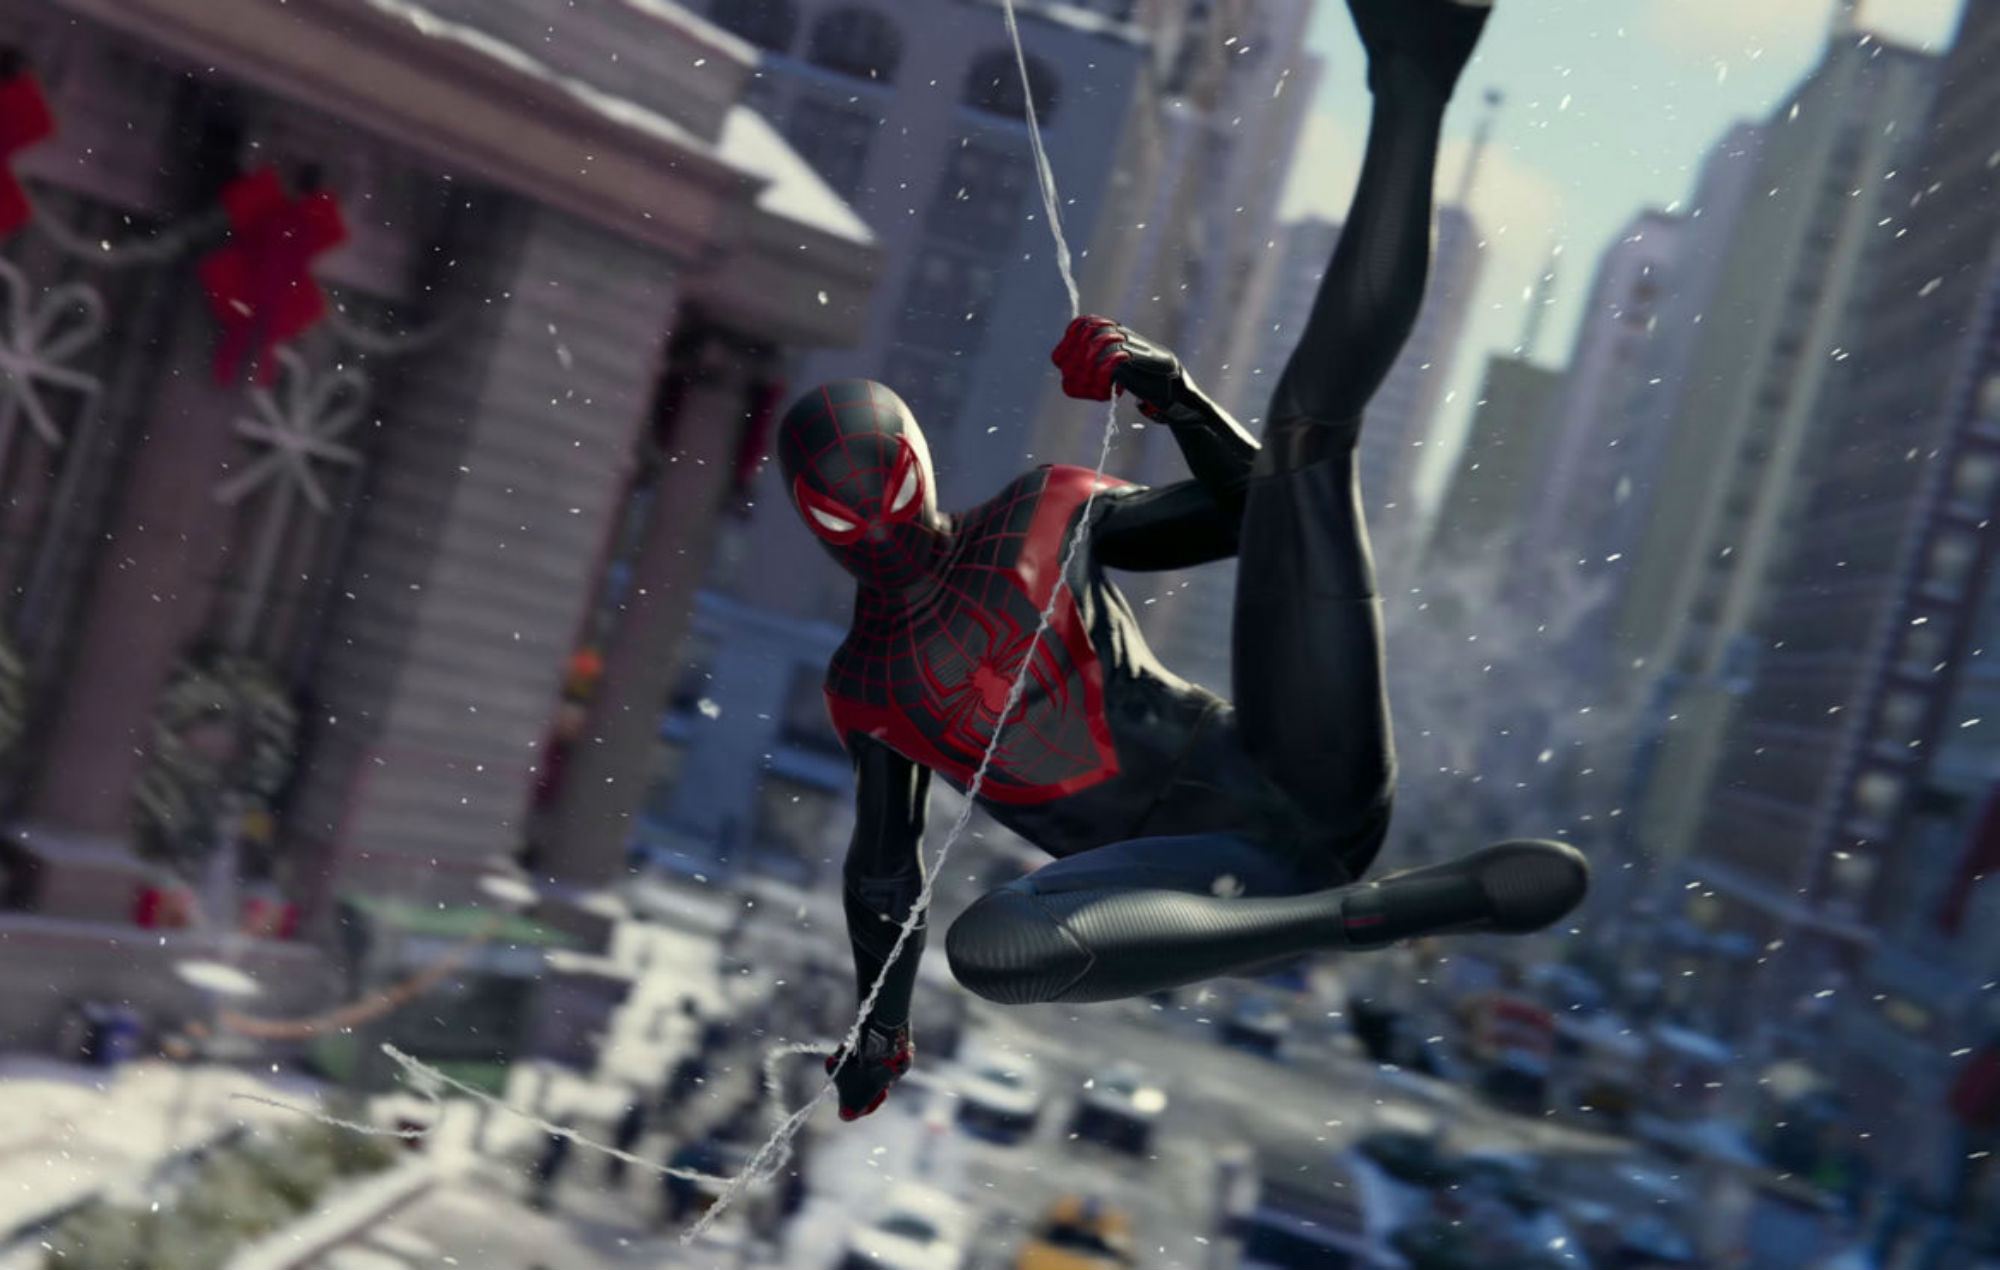 Miles Morales as Spider-Man zips toward the screen.